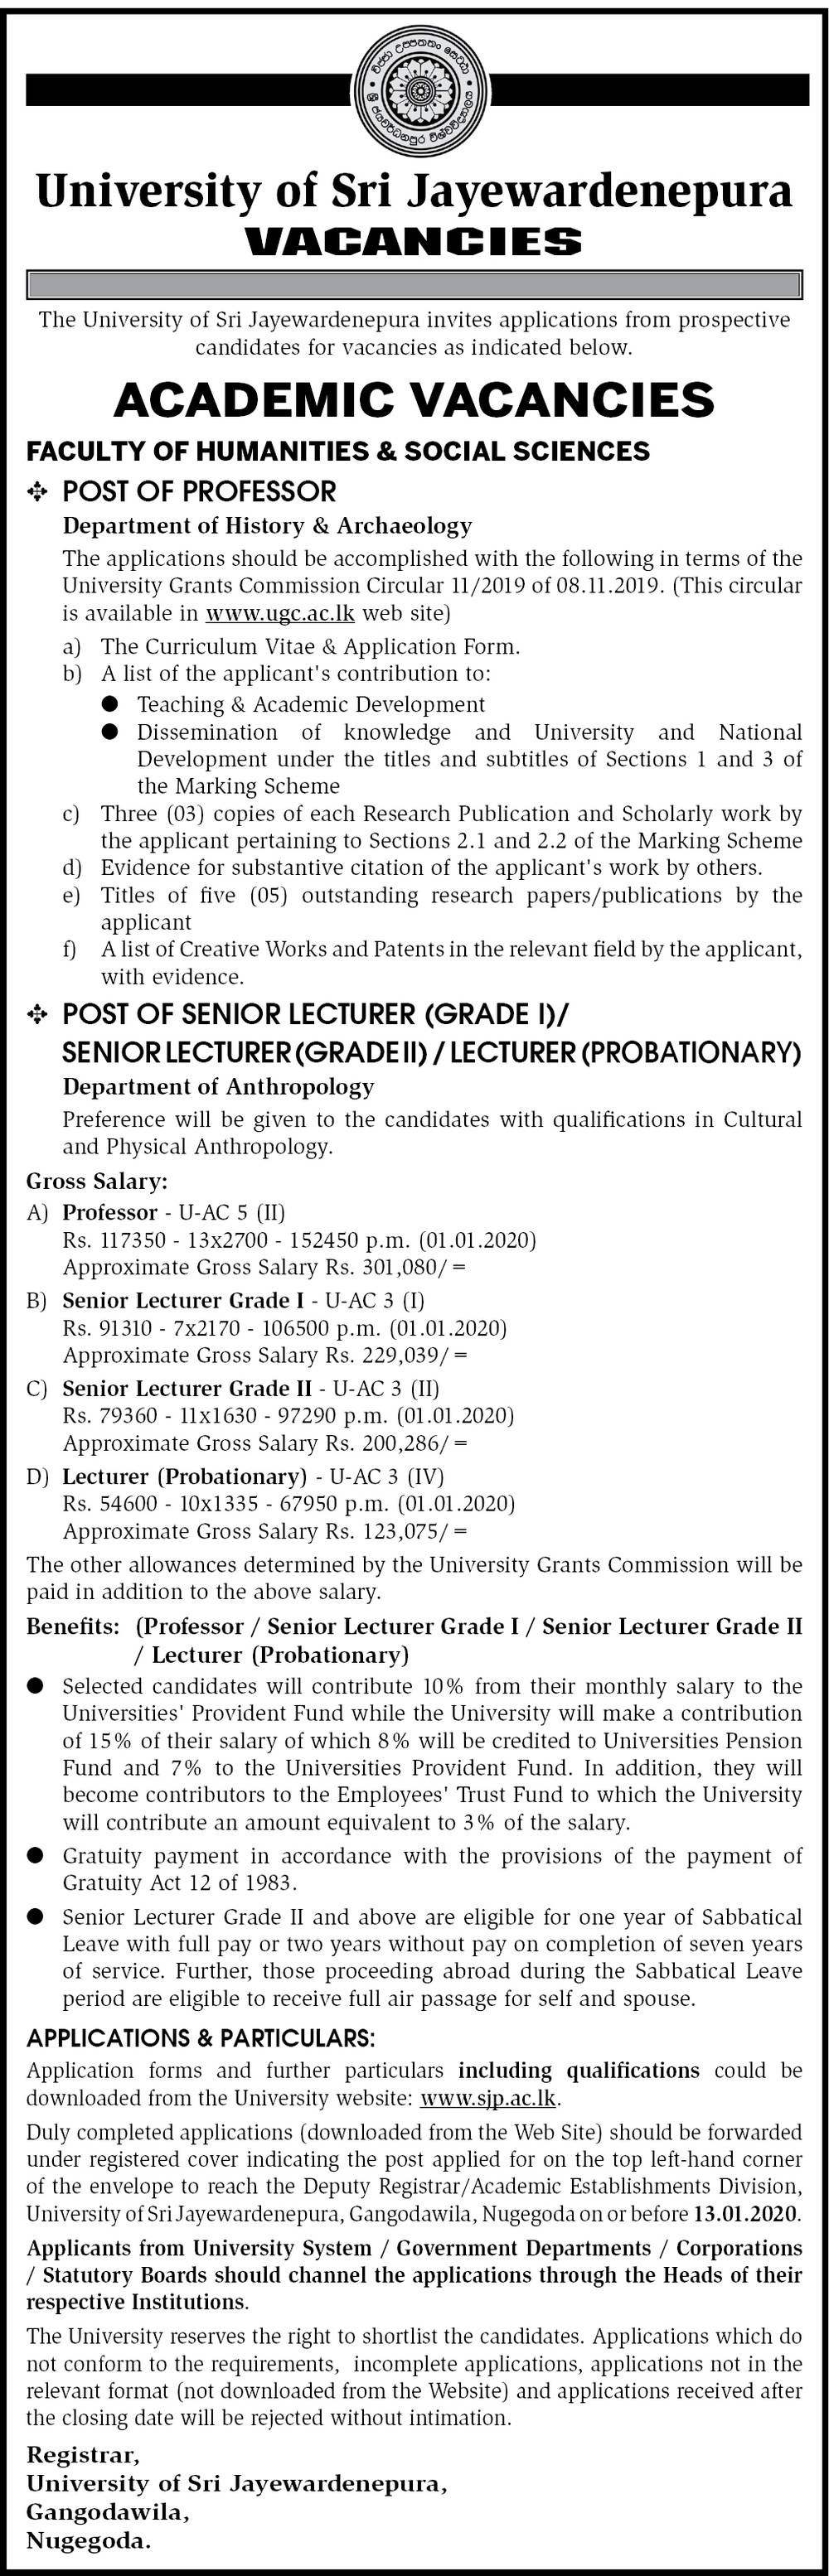 Professor , Senior Lecturer, Lecturer - University of Sri Jayawardhanapura